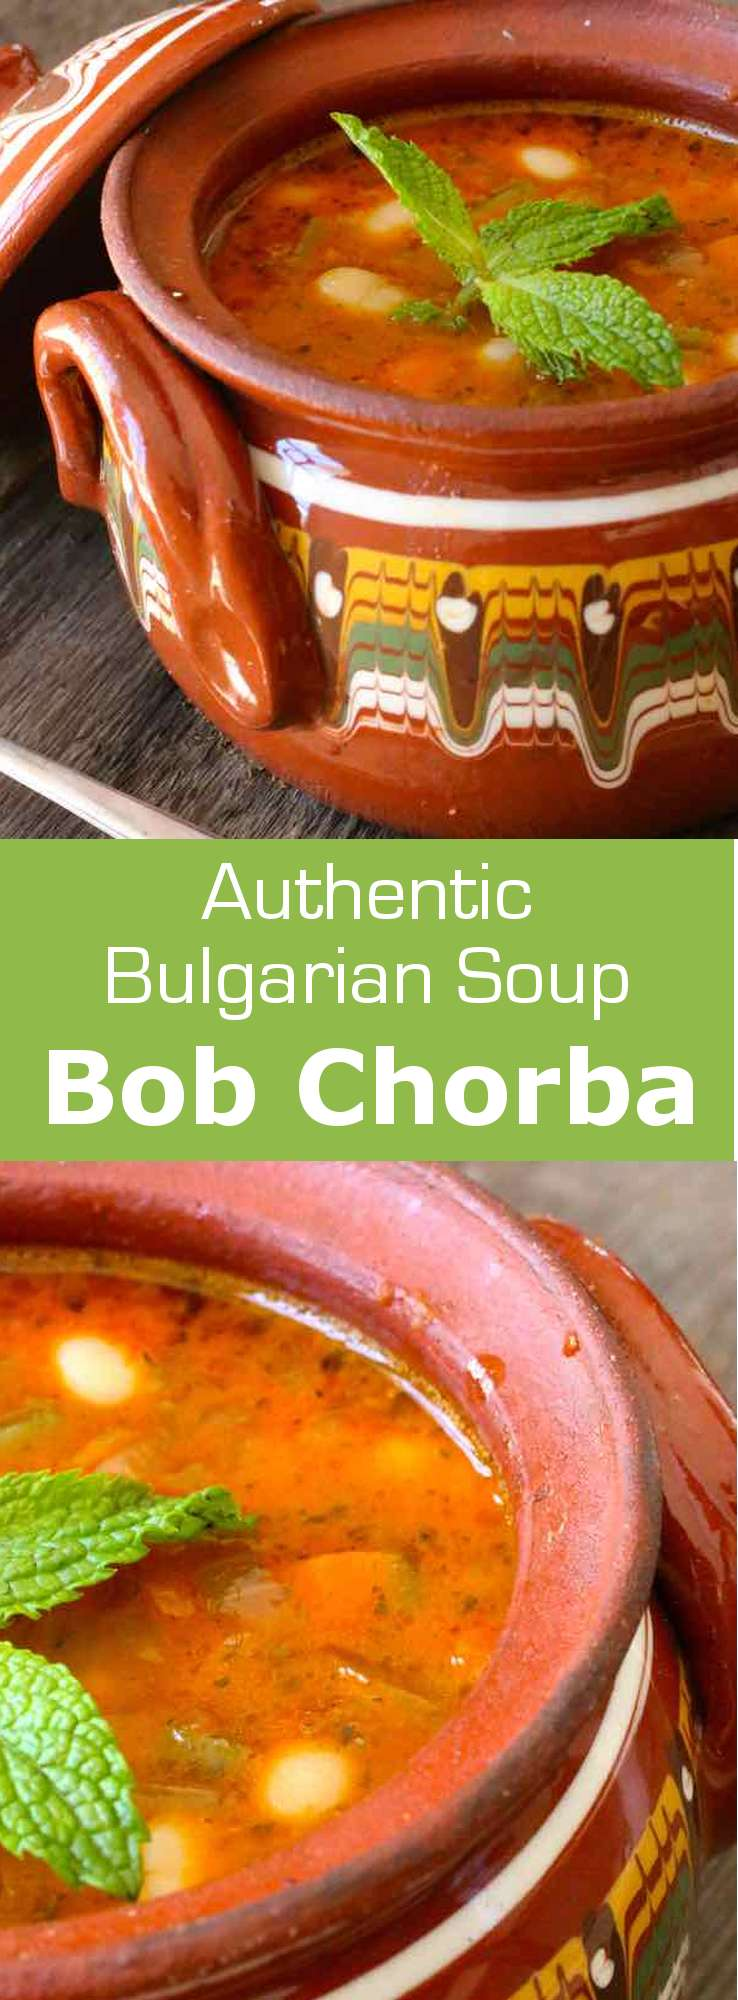 Bob chorba (or bob chorpa) is a hearty and comforting traditional Bulgarian bean soup that is delicately flavored with spearmint.  #Bulgaria #Bulgarian #BulgarianCuisine #BulgarianFood #BulgarianRecipe #Soup #Vegetarian #VegetarianSoup #WorldCuisine #196flavors